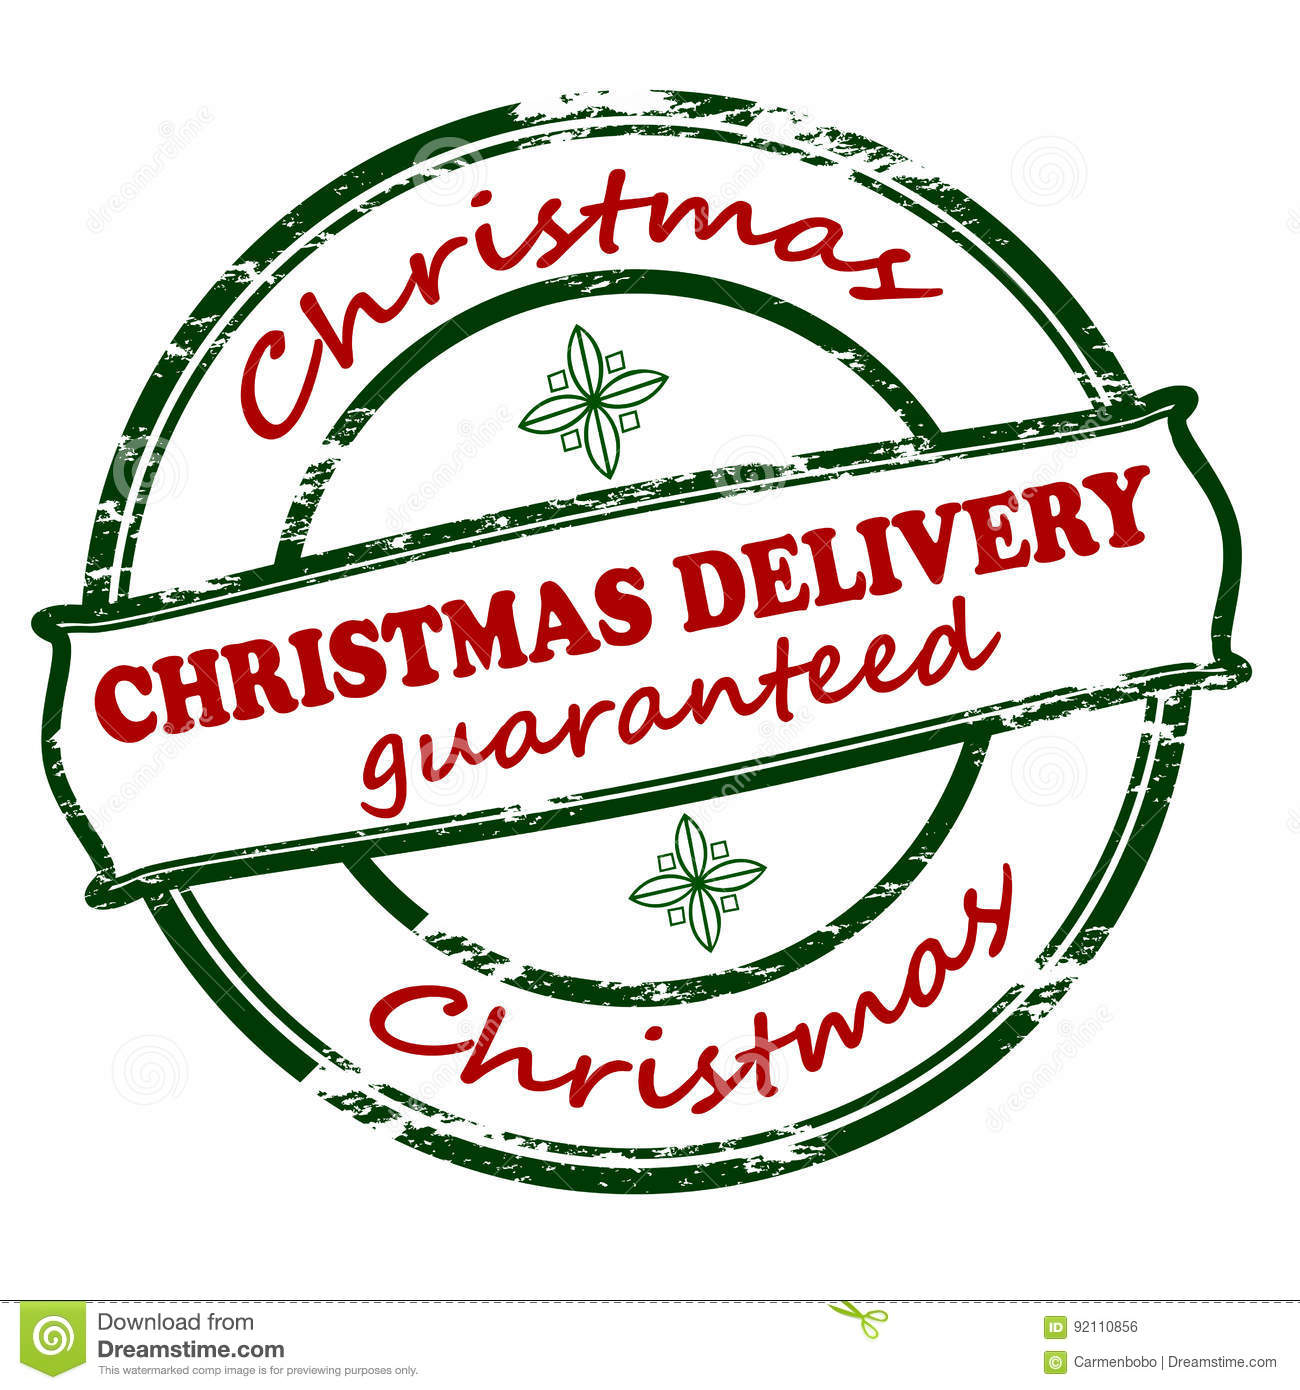 Delivery Christmas Guaranteed Stock Illustration - Image: 92110856